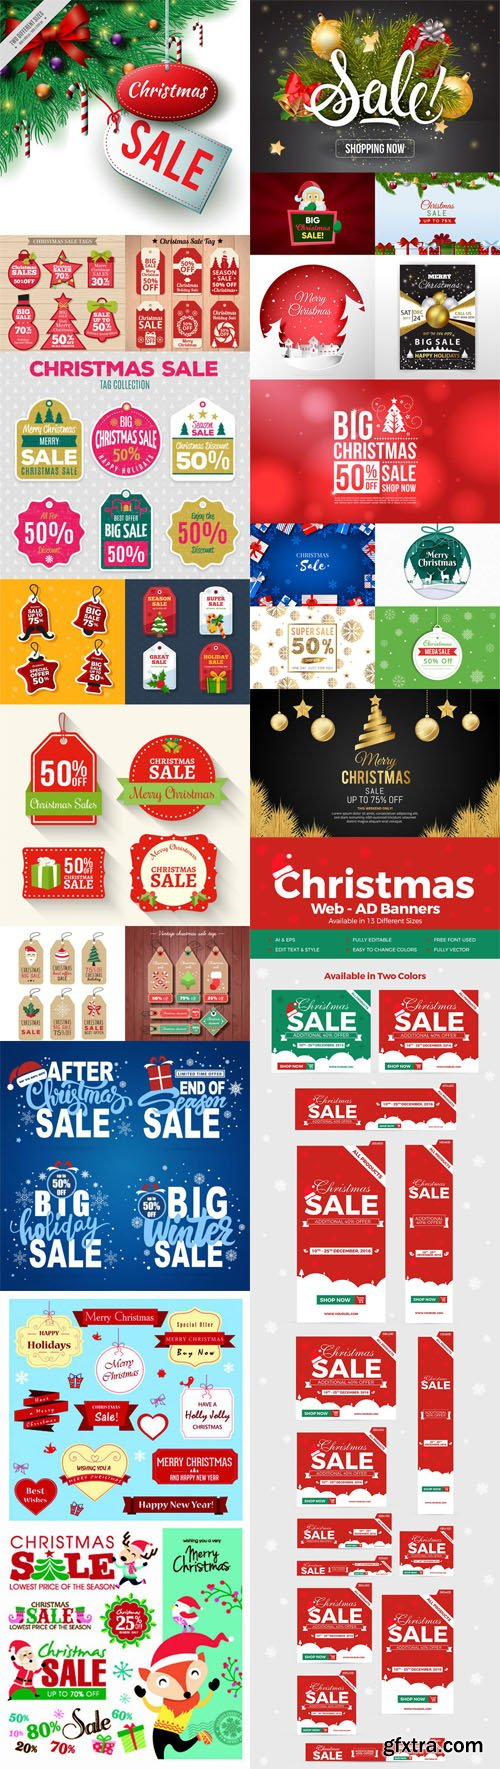 Holiday & Christmas Sales Vector Bundle 3